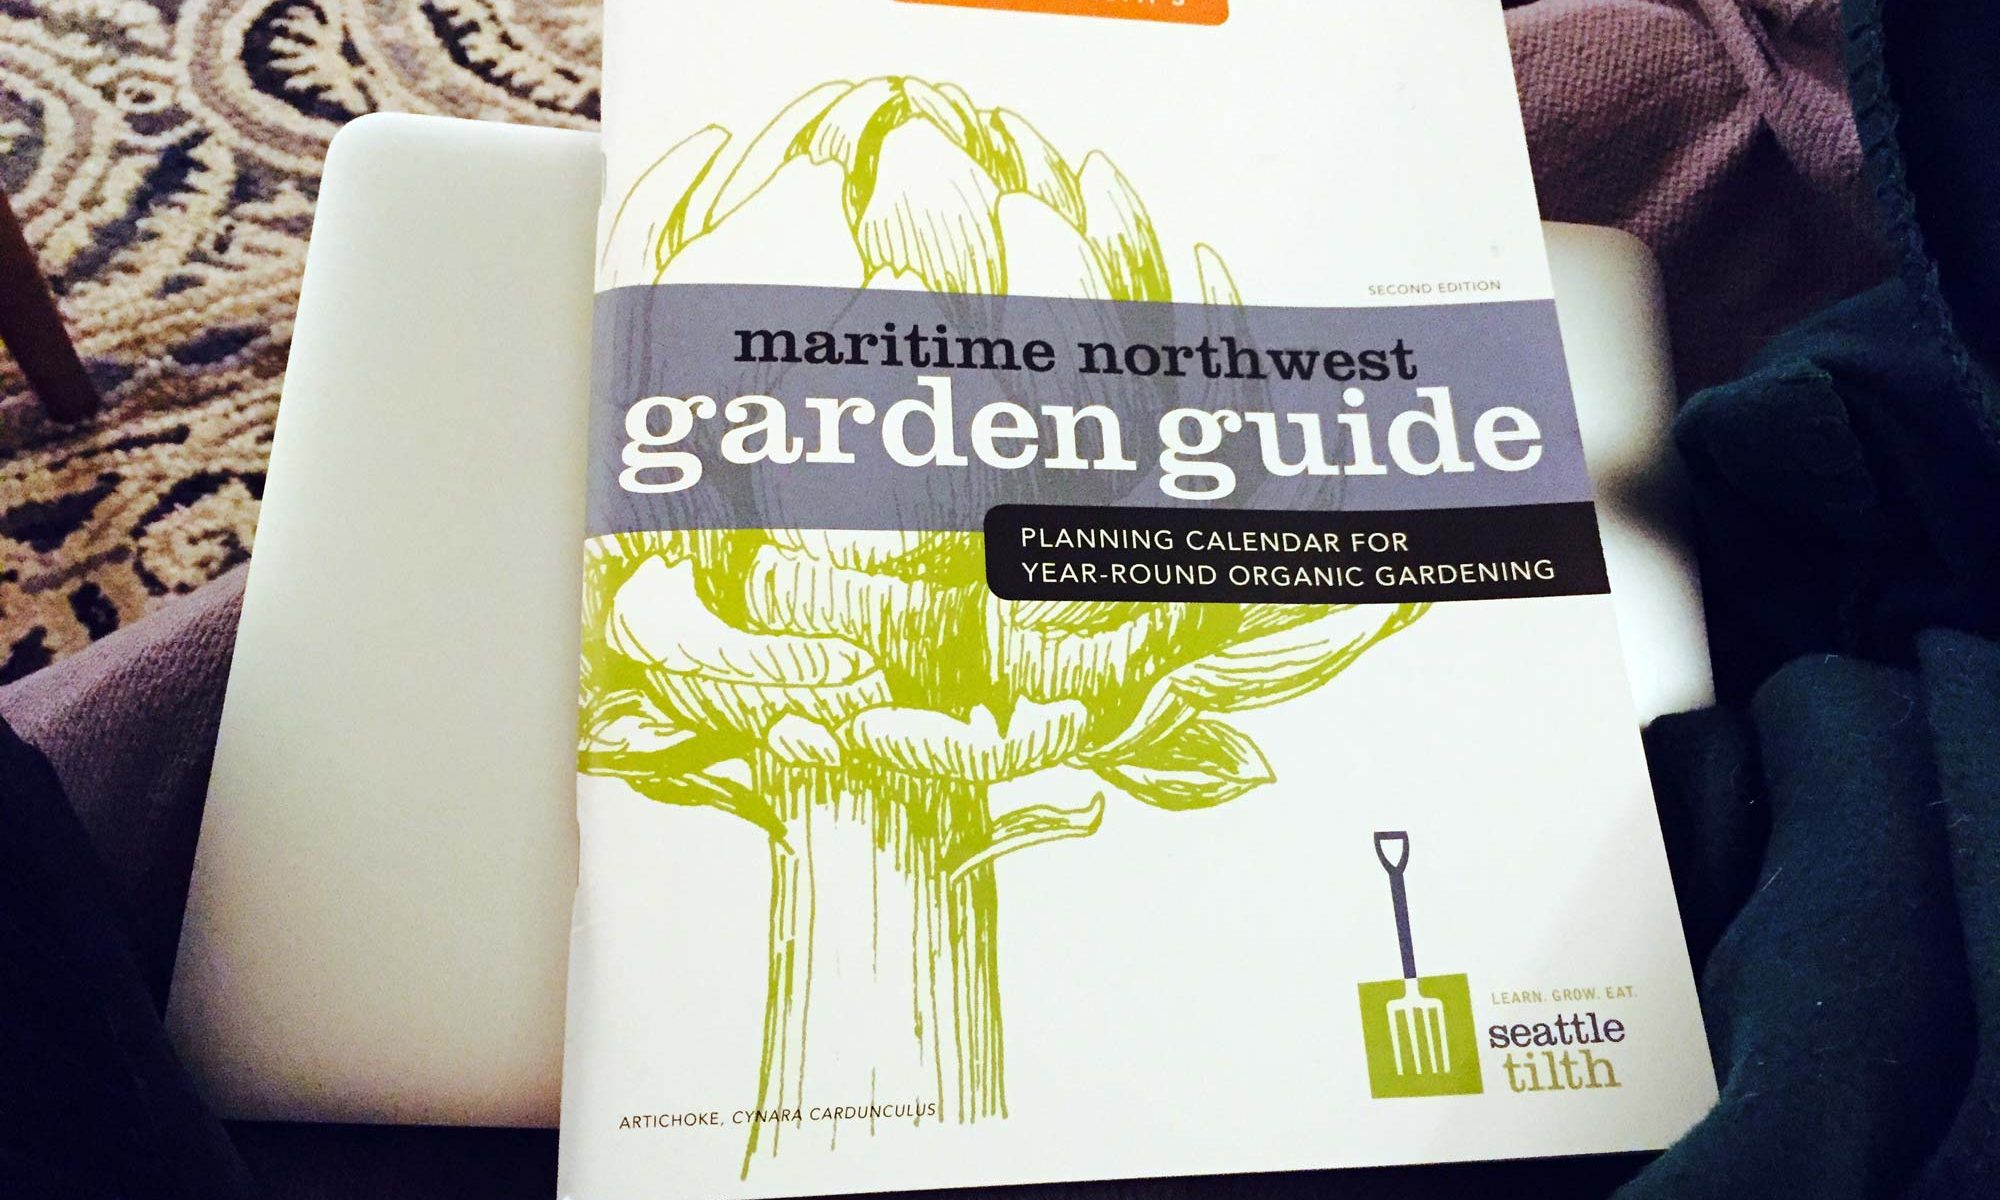 Seattle Tilth's Maritime Northwest Garden Guide